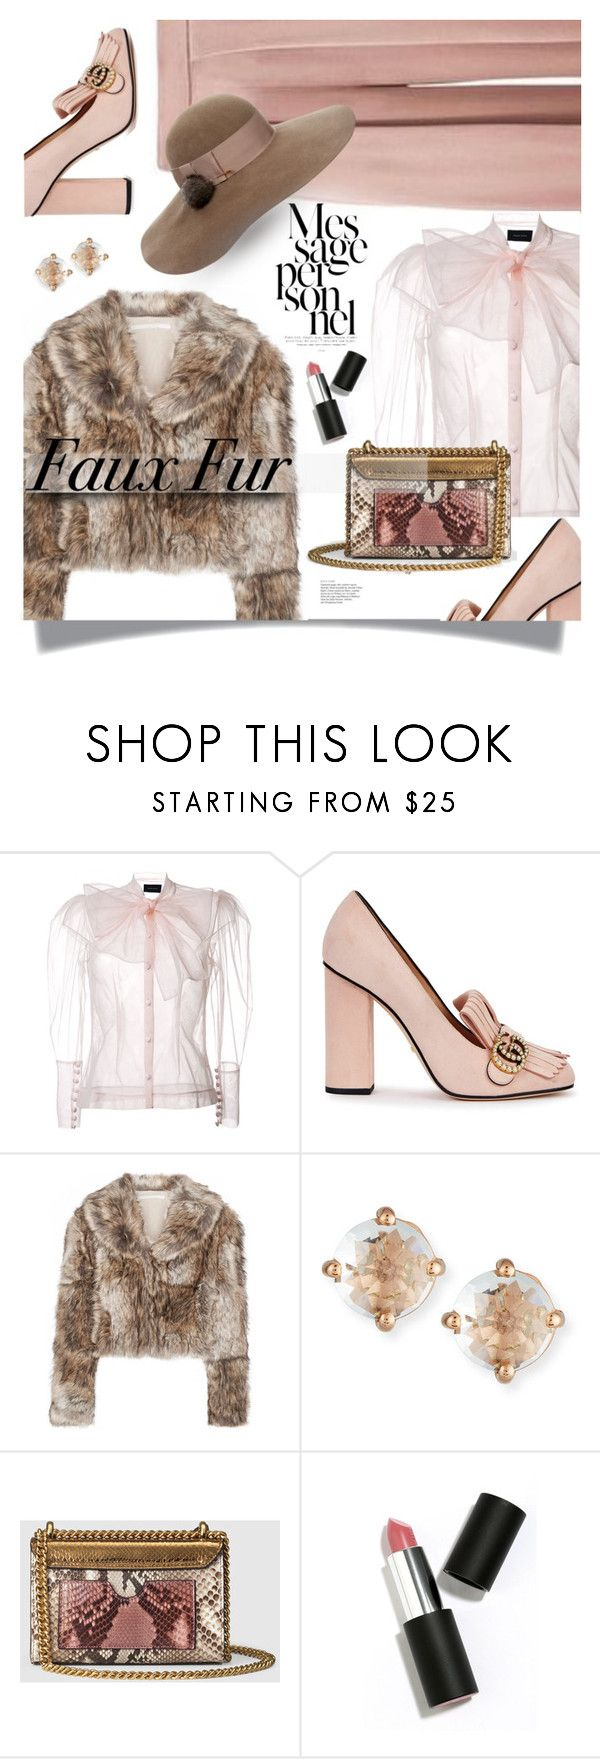 """""""Wow factor: faux fur"""" by nineseventyseven ❤ liked on Polyvore featuring Cushnie Et Ochs, Simone Rocha, Gucci, STELLA McCARTNEY, Suzanne Kalan, Sigma, Eugenia Kim and fauxfur"""